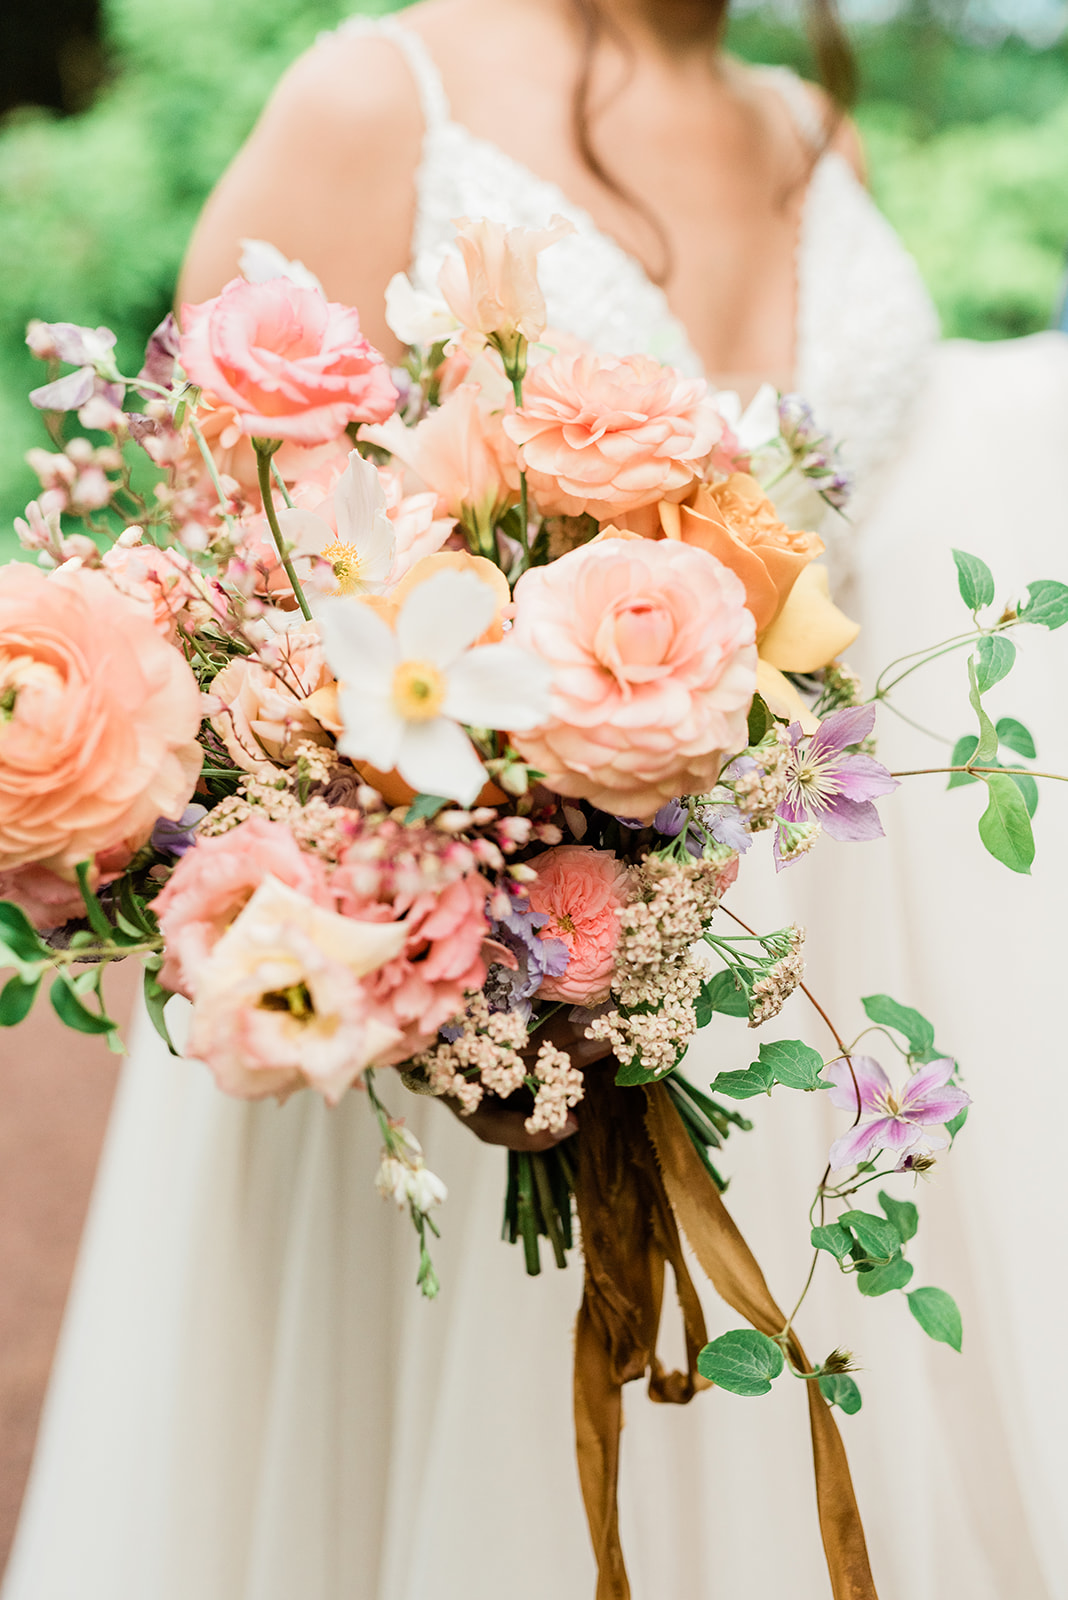 Loose Wedding Bouquet with Pink and White Flowers